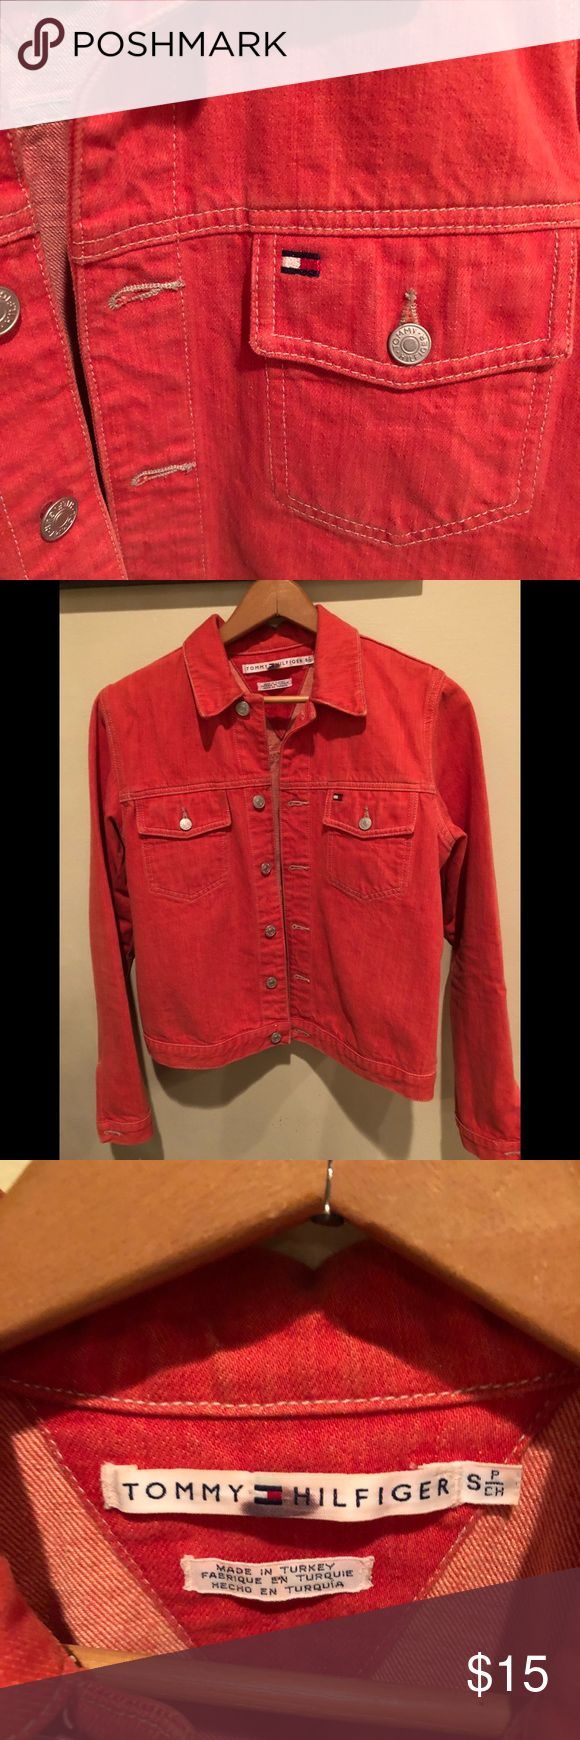 🍊Tommy Hilfiger outlet jean jacket! 🍊Super cute Tommy outlet denim jacket. Tangerine orange. Hits at waist. EUC. Fun piece for the spring!Smoke/pet-free home. Tommy Hilfiger Jackets & Coats Jean Jackets